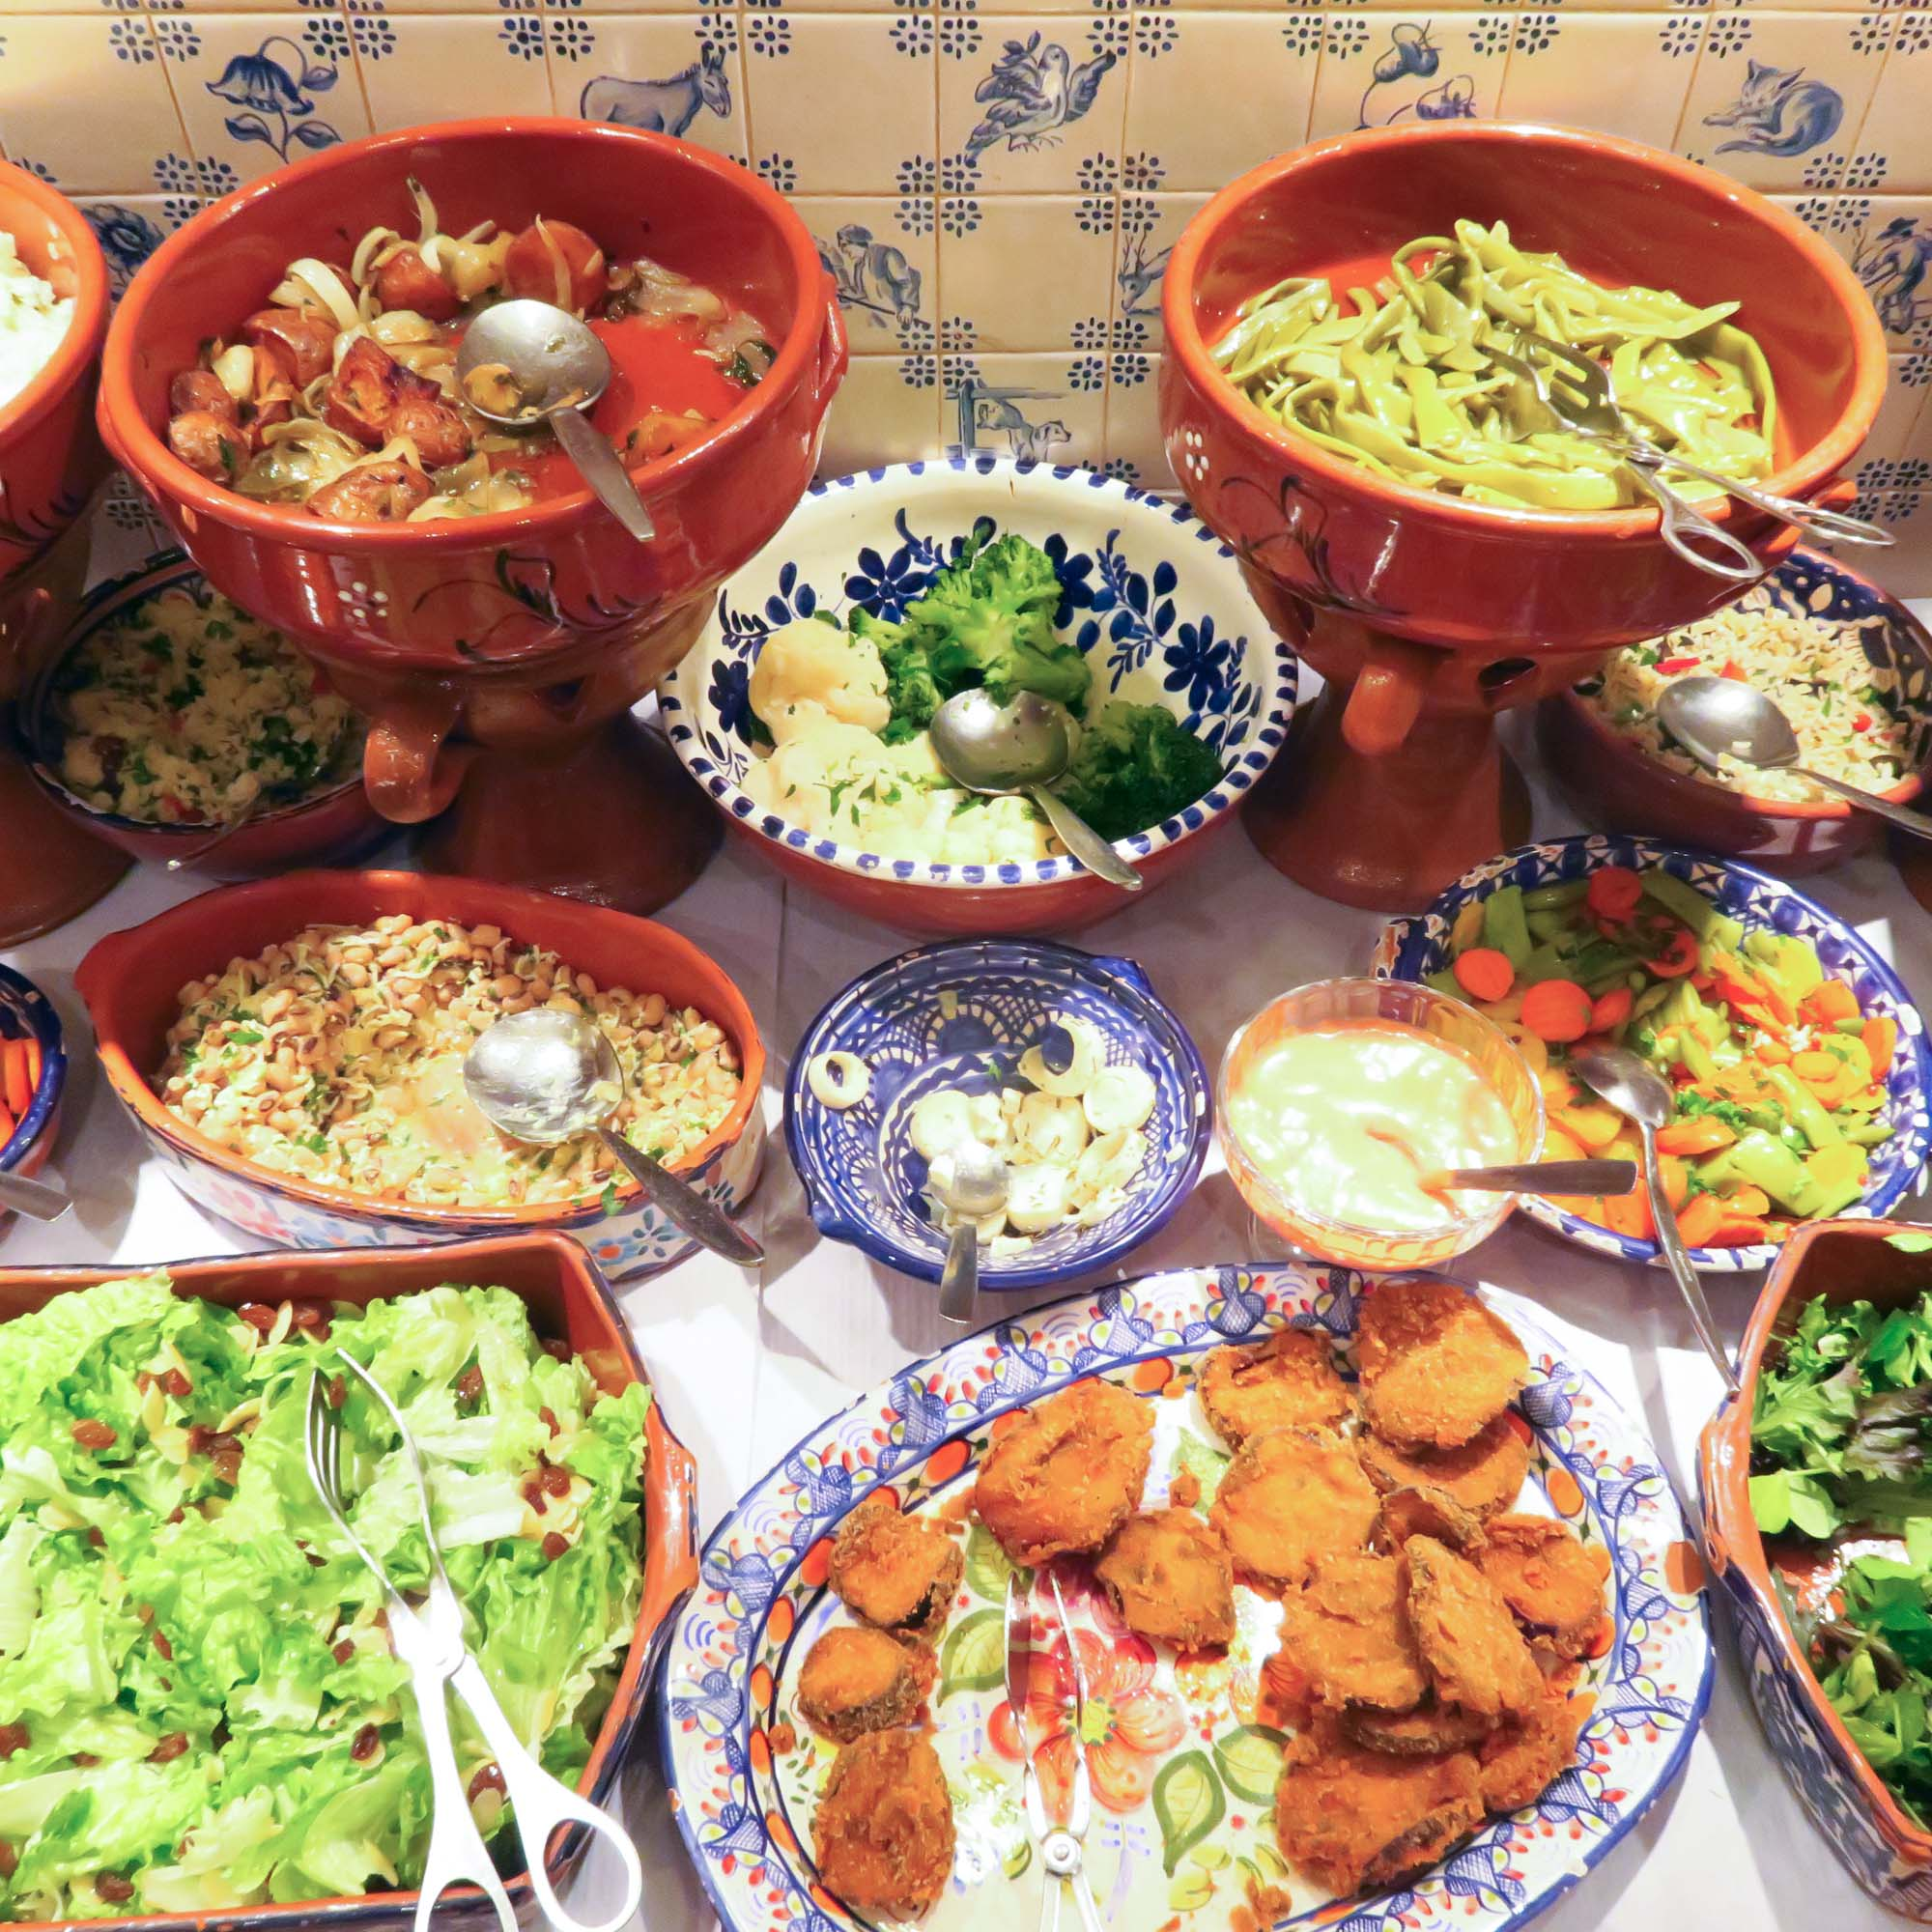 All you can eat vegan buffet? Yes bloody please!